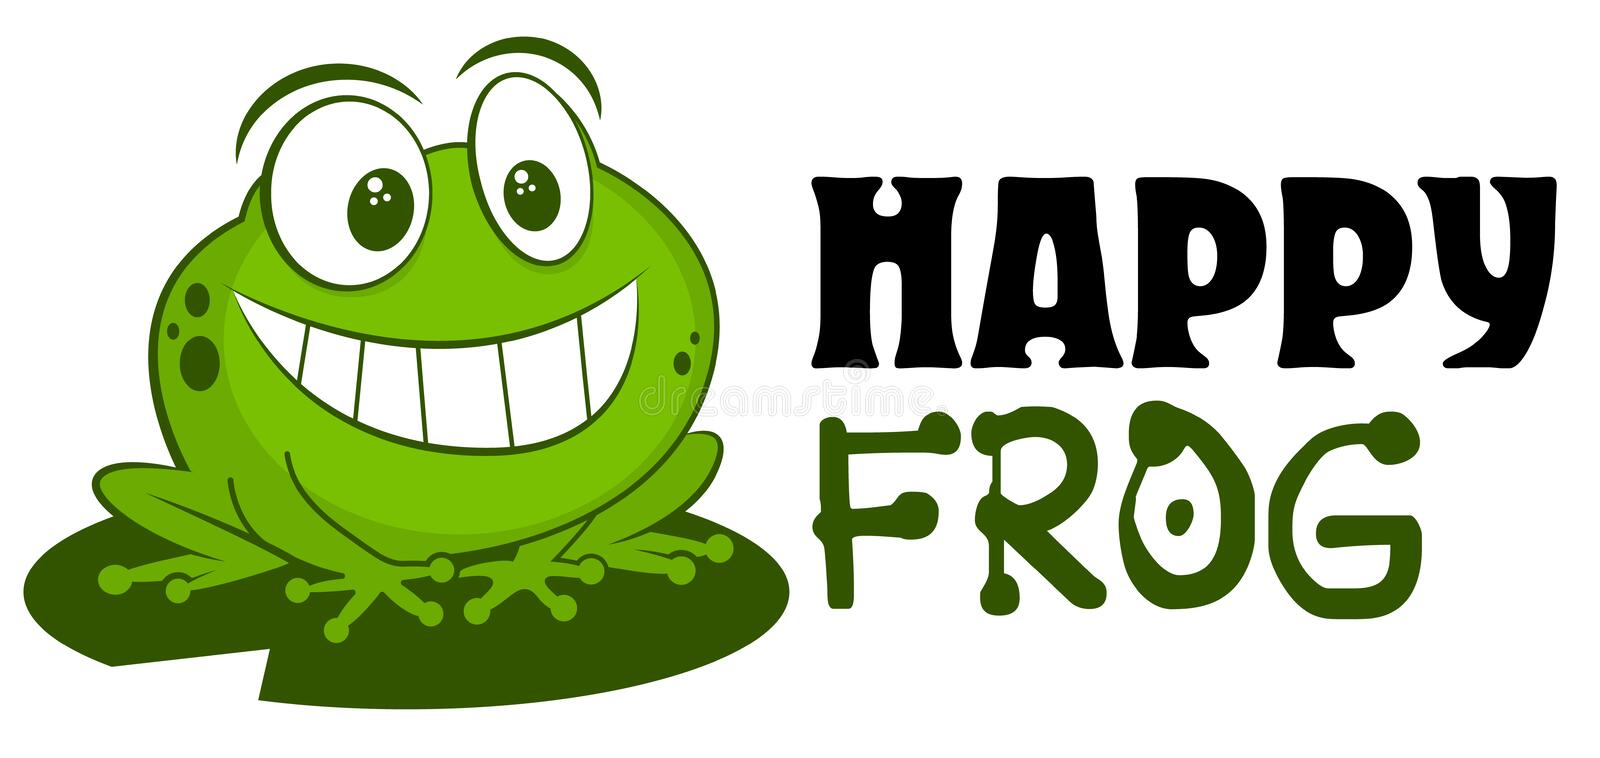 Frog logo mascot vector illustration. Cute funny cartoon hand drawn toad smiling isolated on white background and sitting on leaf. royalty free illustration